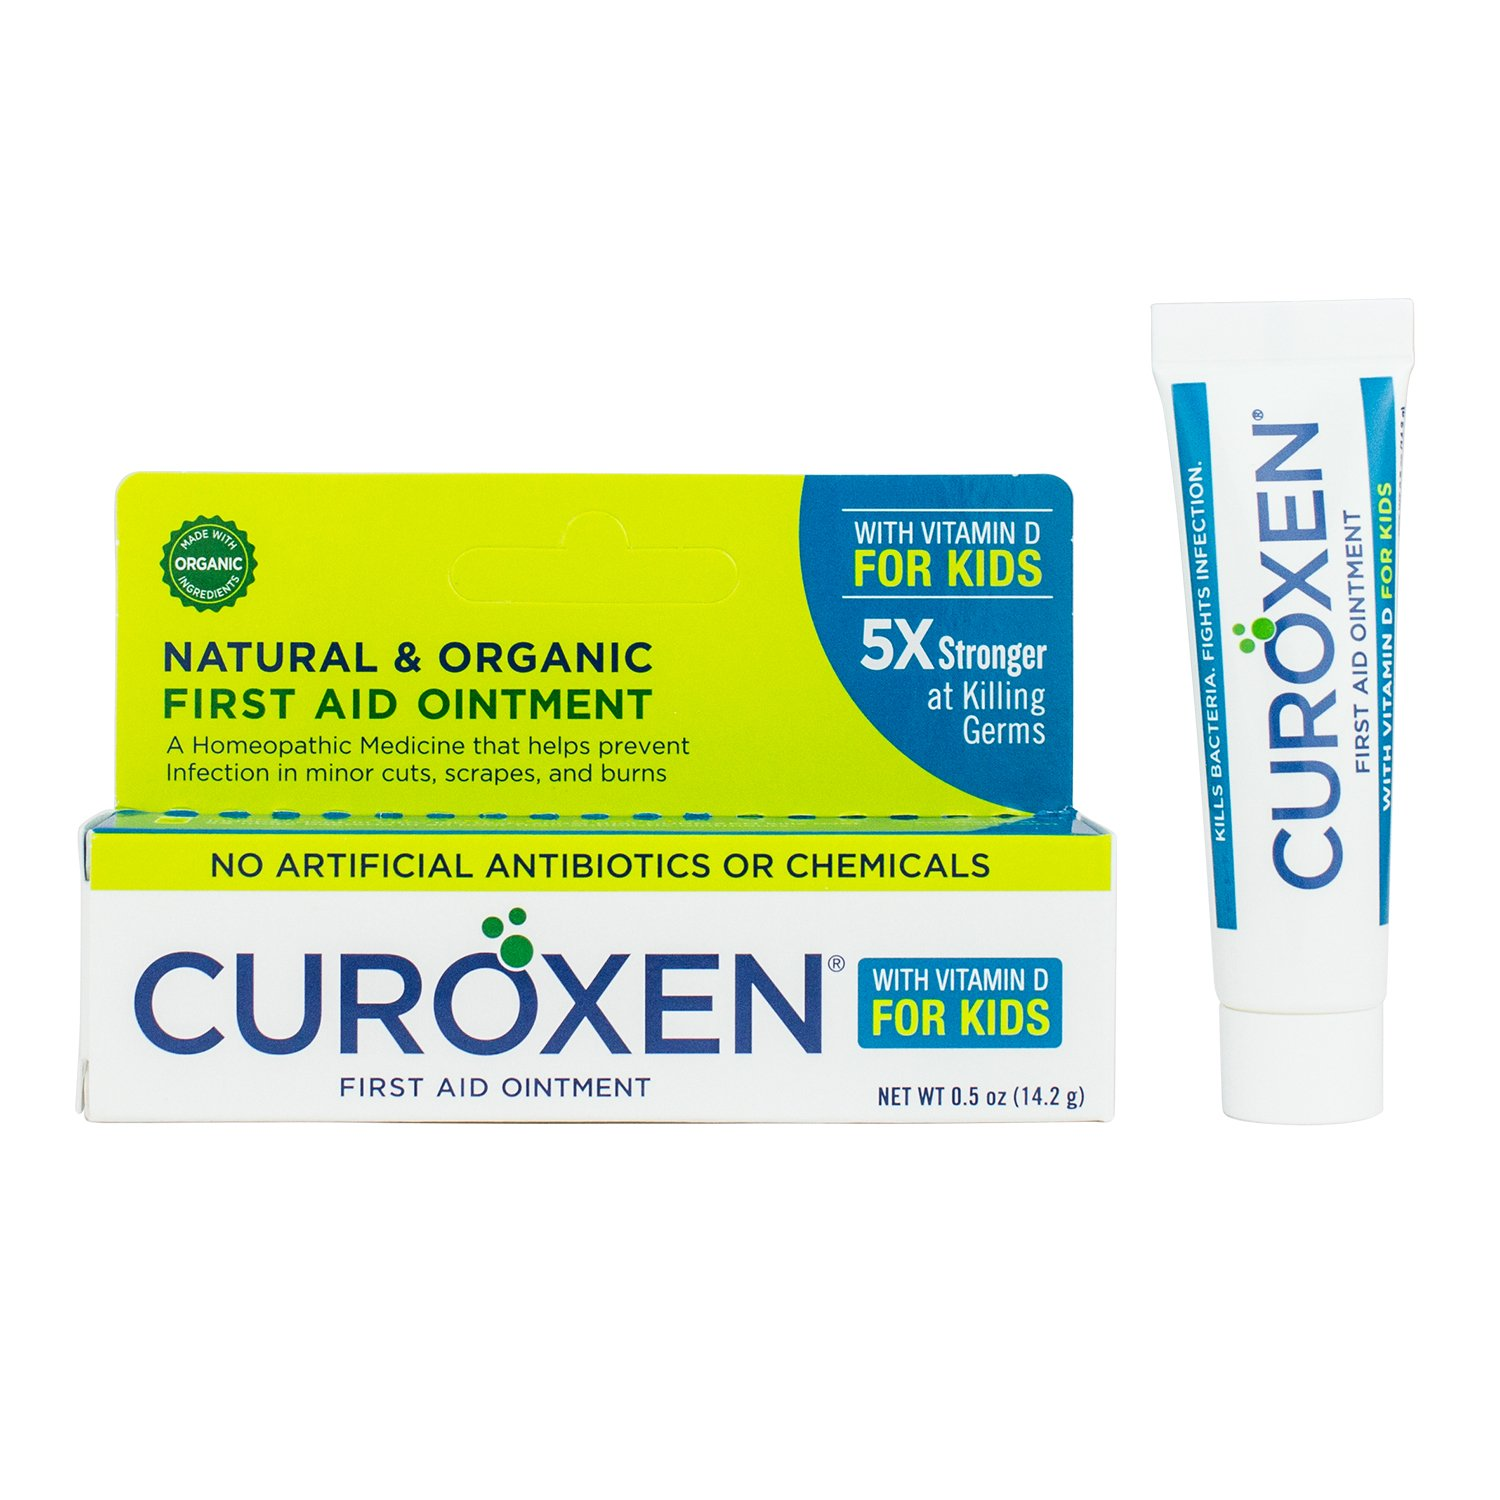 CUROXEN All-Natural & Organic First Aid Ointment for Kids with Vitamin D